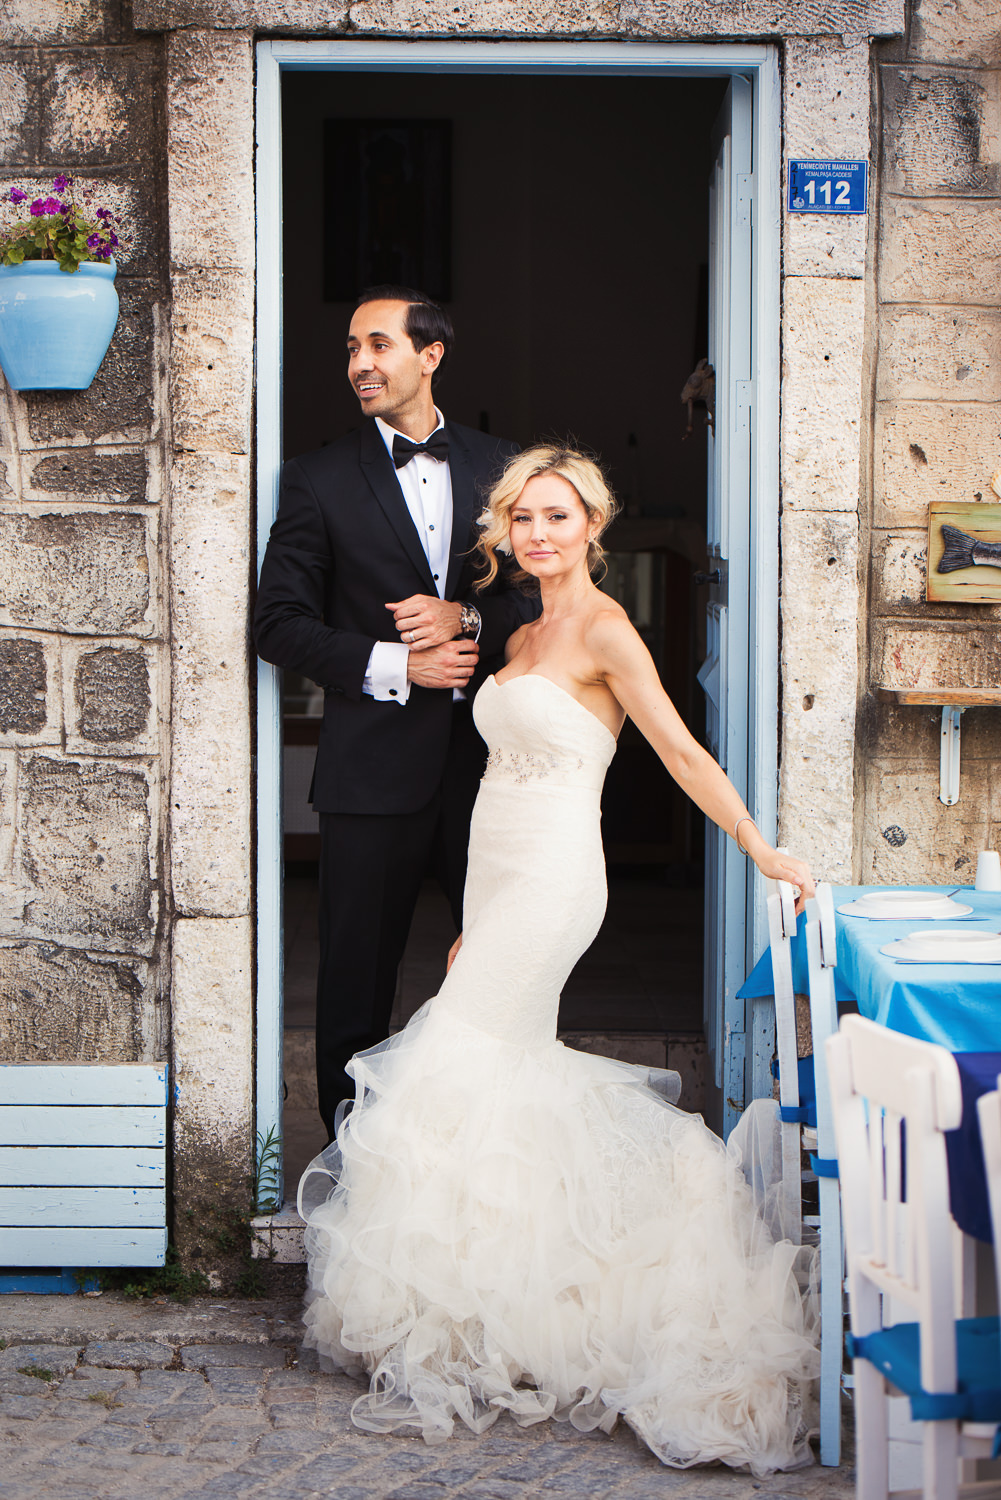 Turkey Wedding - Bride and Groom together in Alcati Doorway